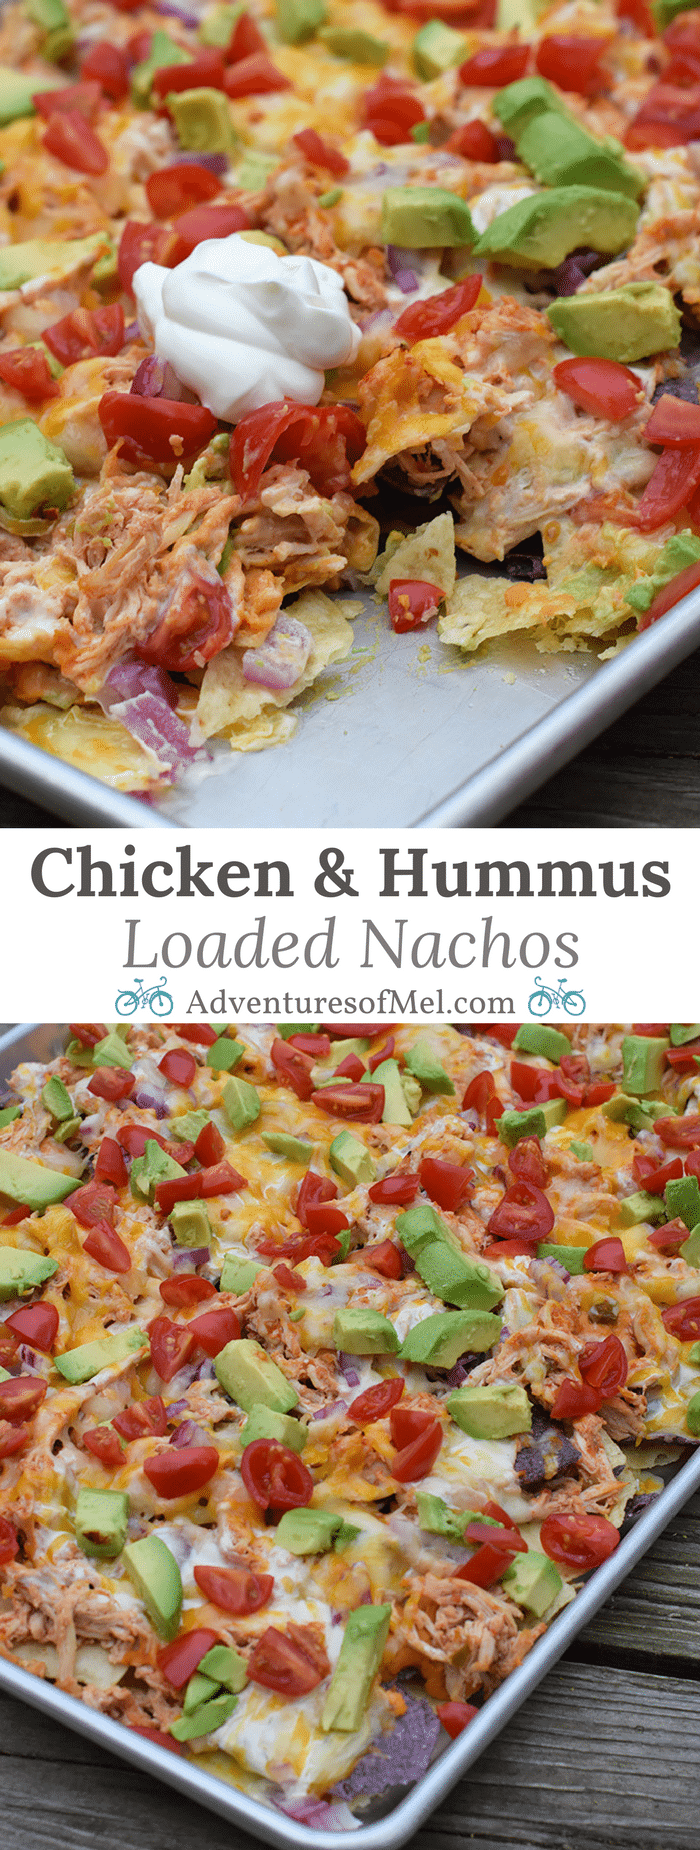 Hungry for loaded nachos and Tex-Mex but don't feel like going out? Make the most flavorful loaded nachos with chicken and roasted red pepper hummus, along with other favorite ingredients like cheese, tomatoes, avocado, and more. Chicken and Hummus Loaded Nachos in a Sheet Pan Recipe!